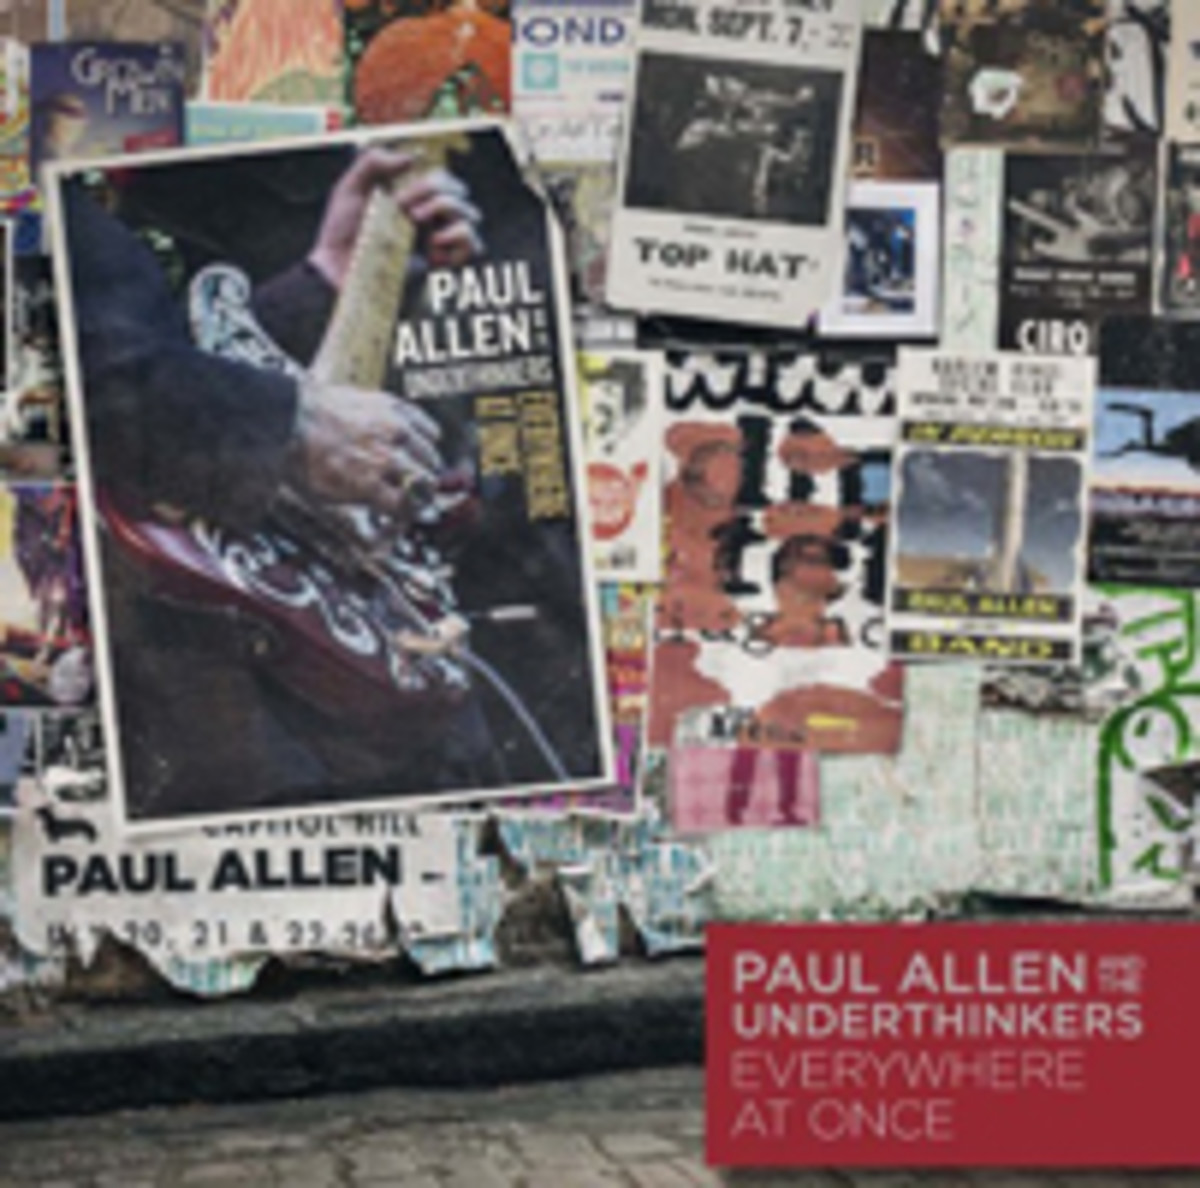 Paul Allen and the Underthinkers